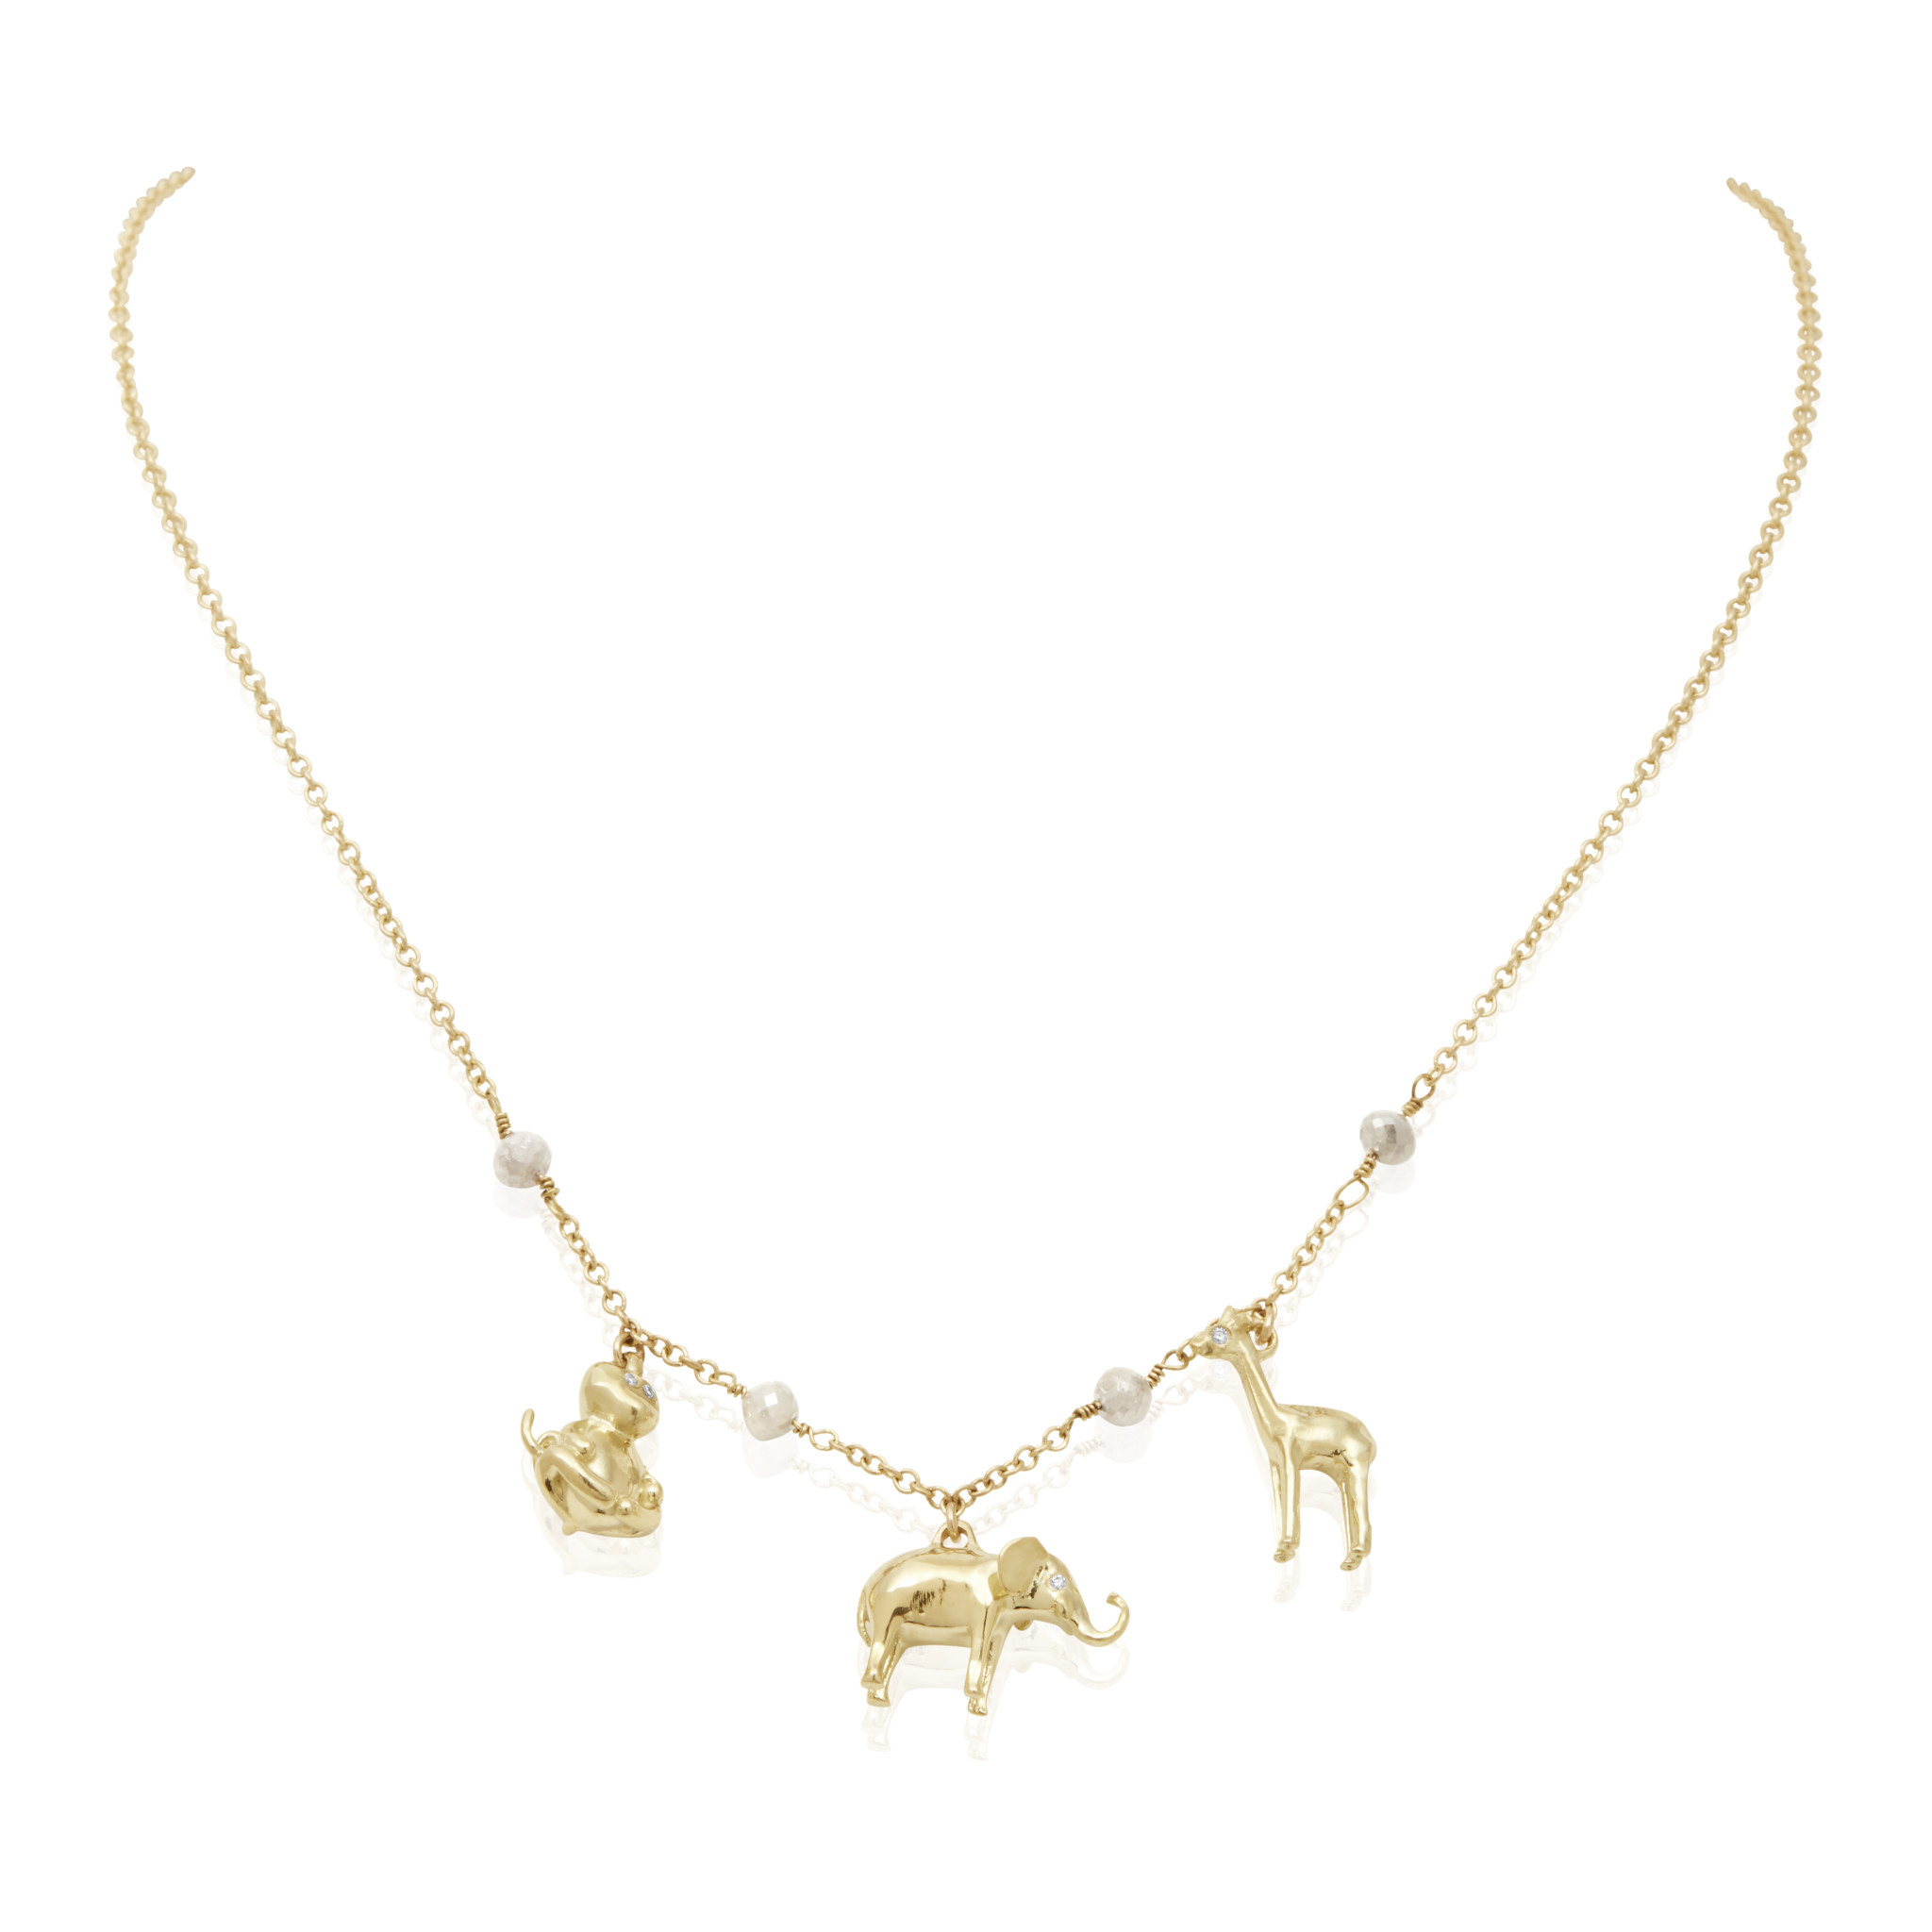 Misahara Serengeti Charm Necklace